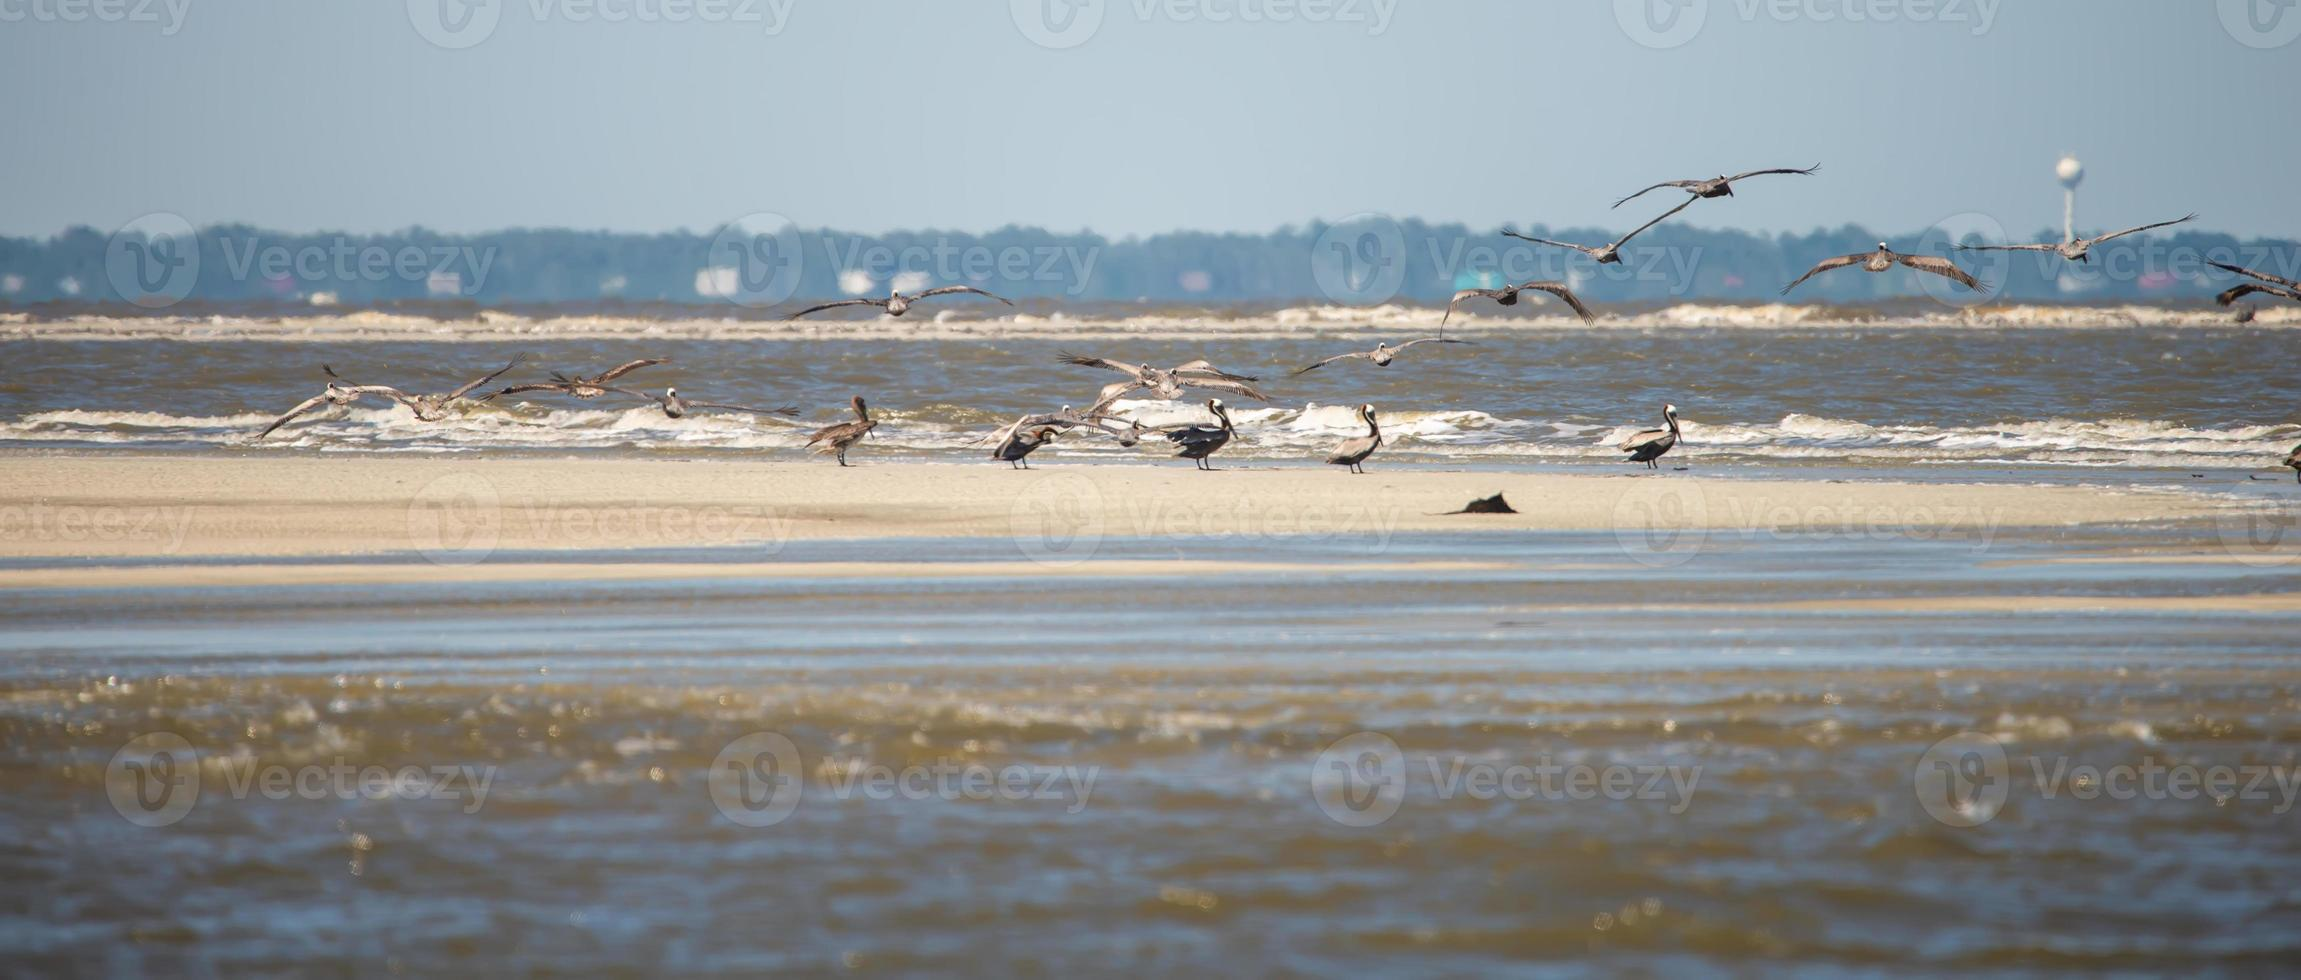 abstract pelicans in flight at the beach of atlantic ocean photo